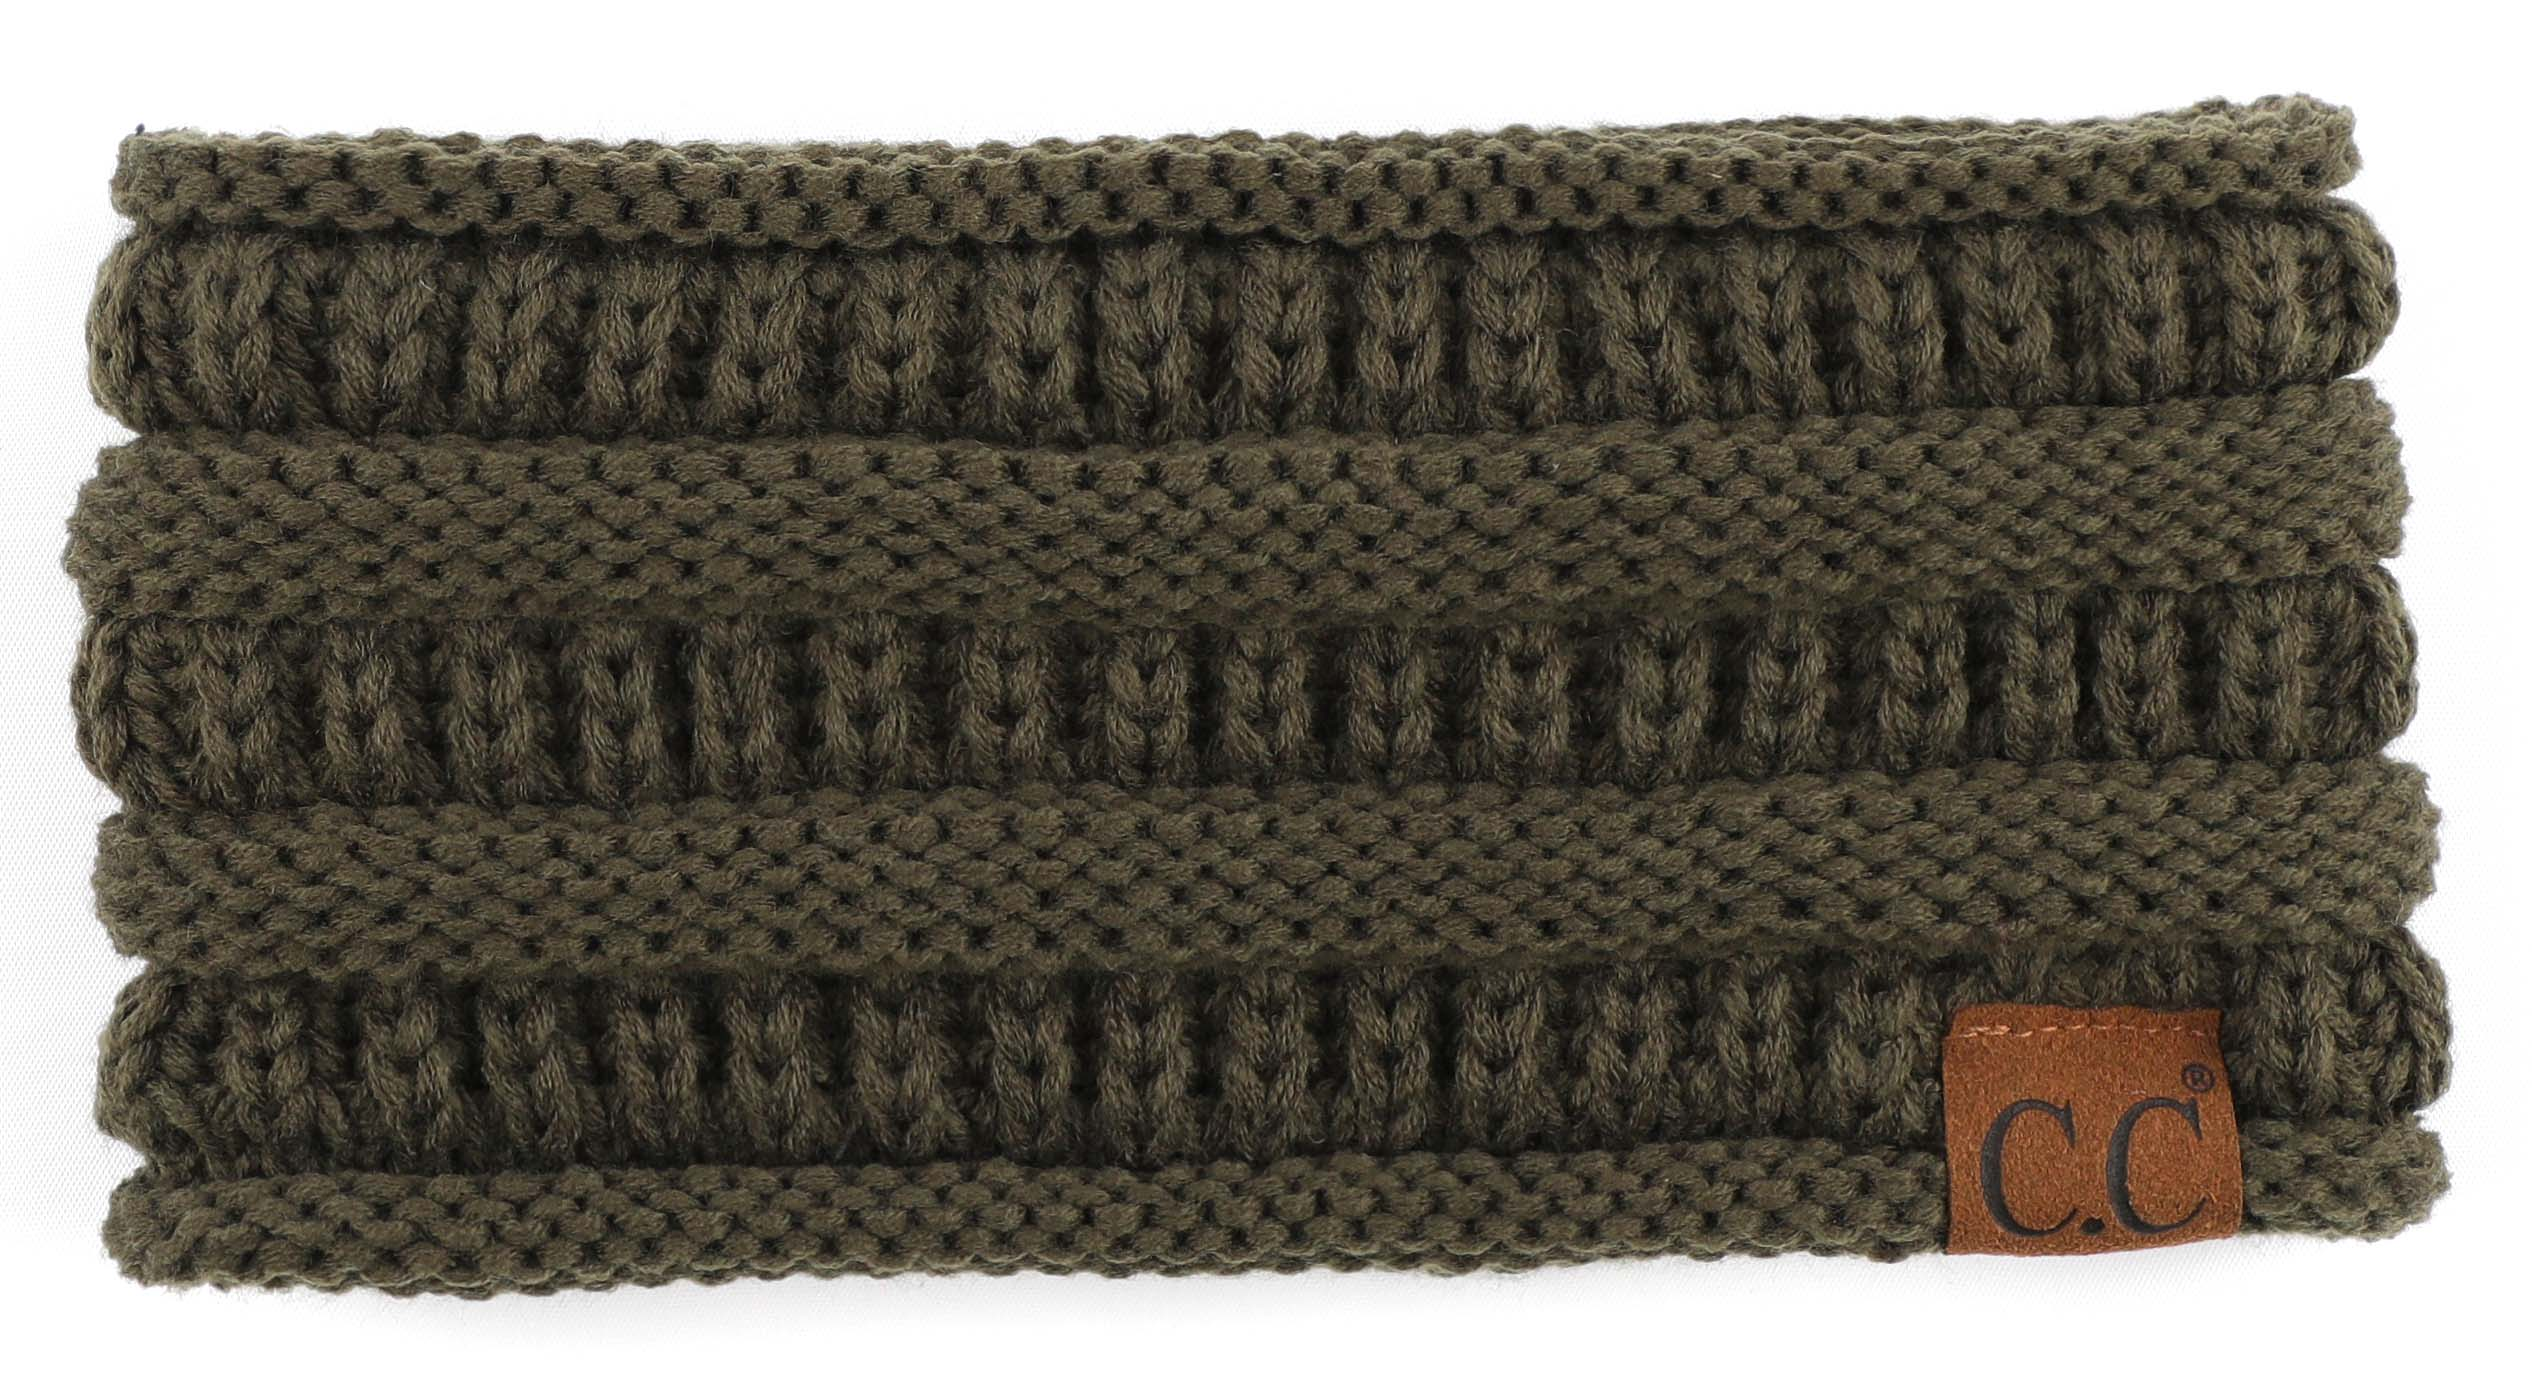 'C.C®' Solid Ribbed Headband - Olive